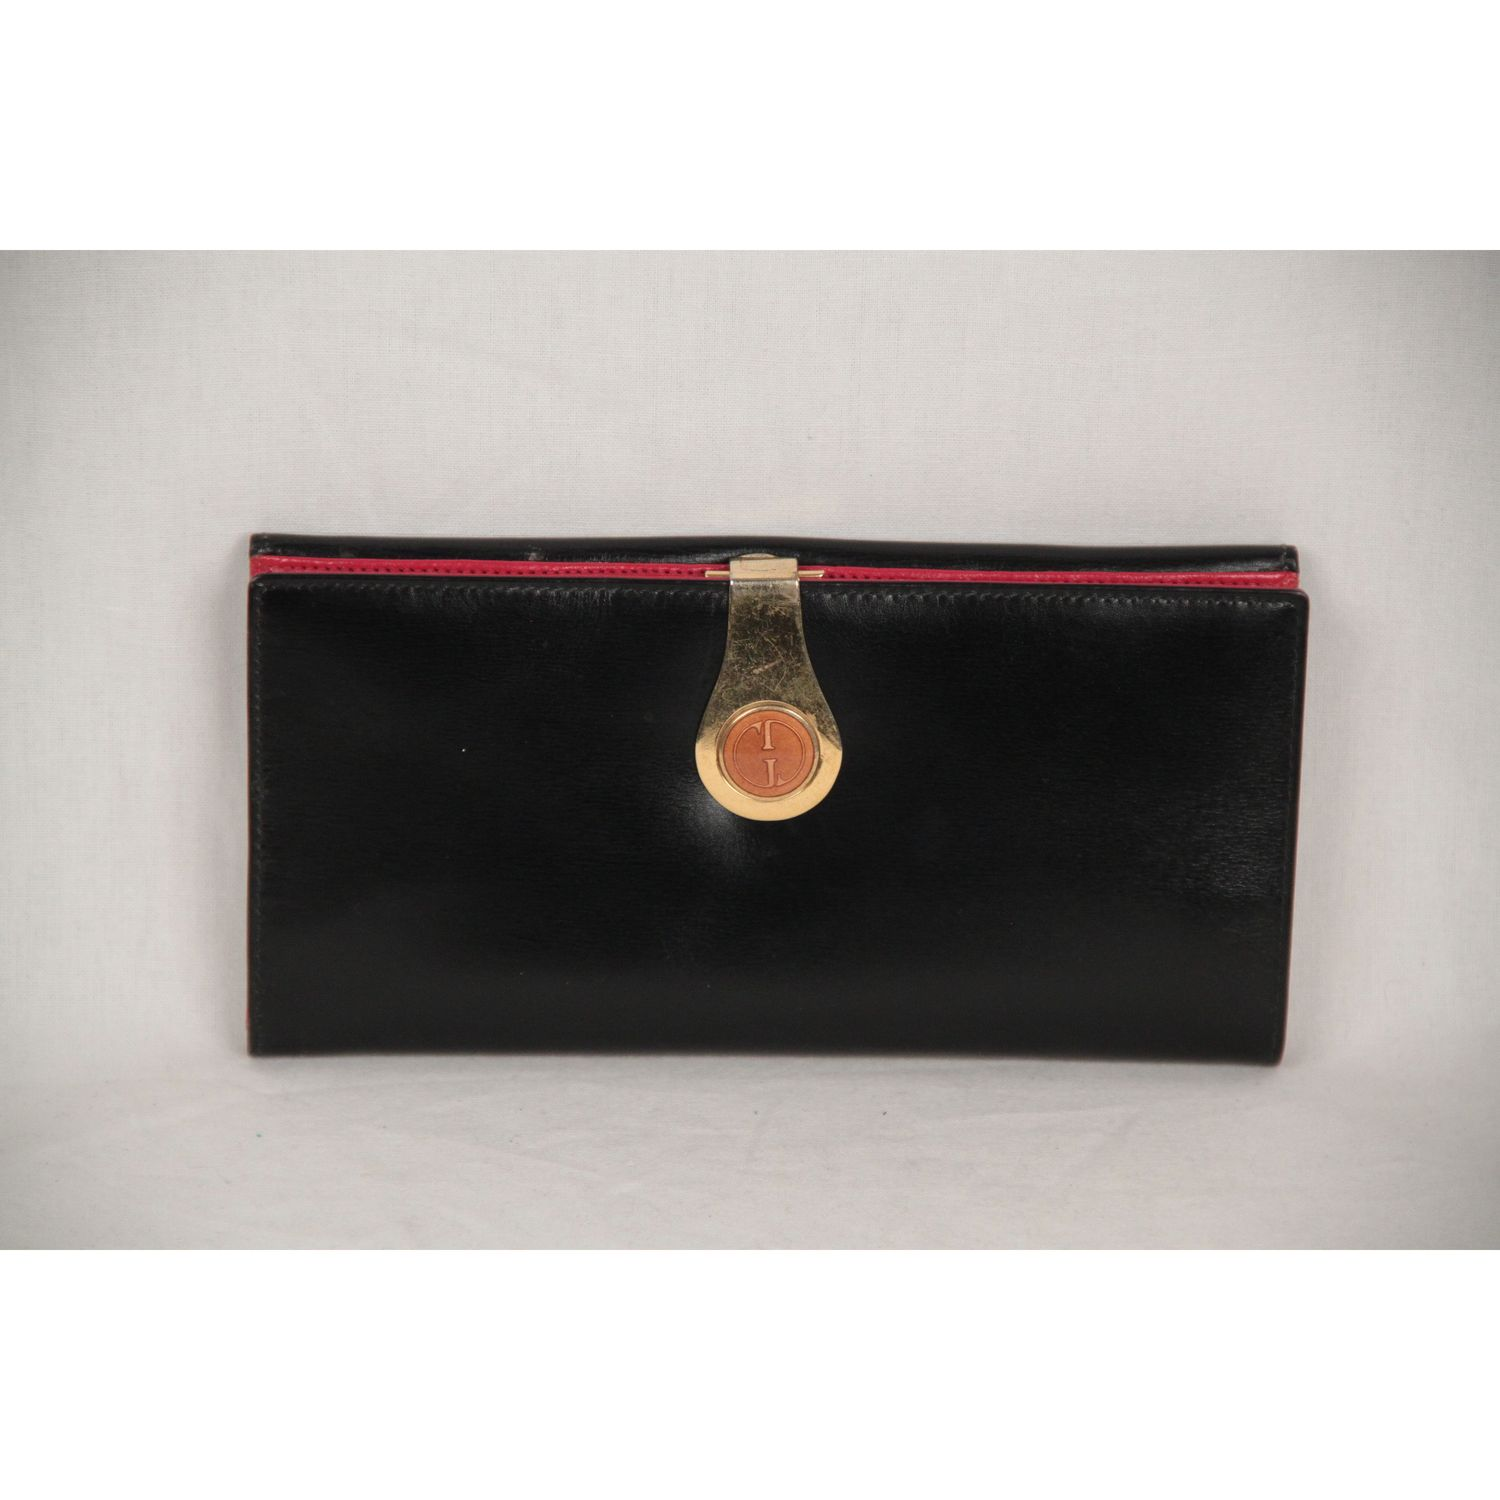 6b07727c0d16 Vintage Gucci long wallet crafted in black leather. Gold metal enameled GG  - GUCCI clasp closure. Back coin compartment with flap and snap button  closure.